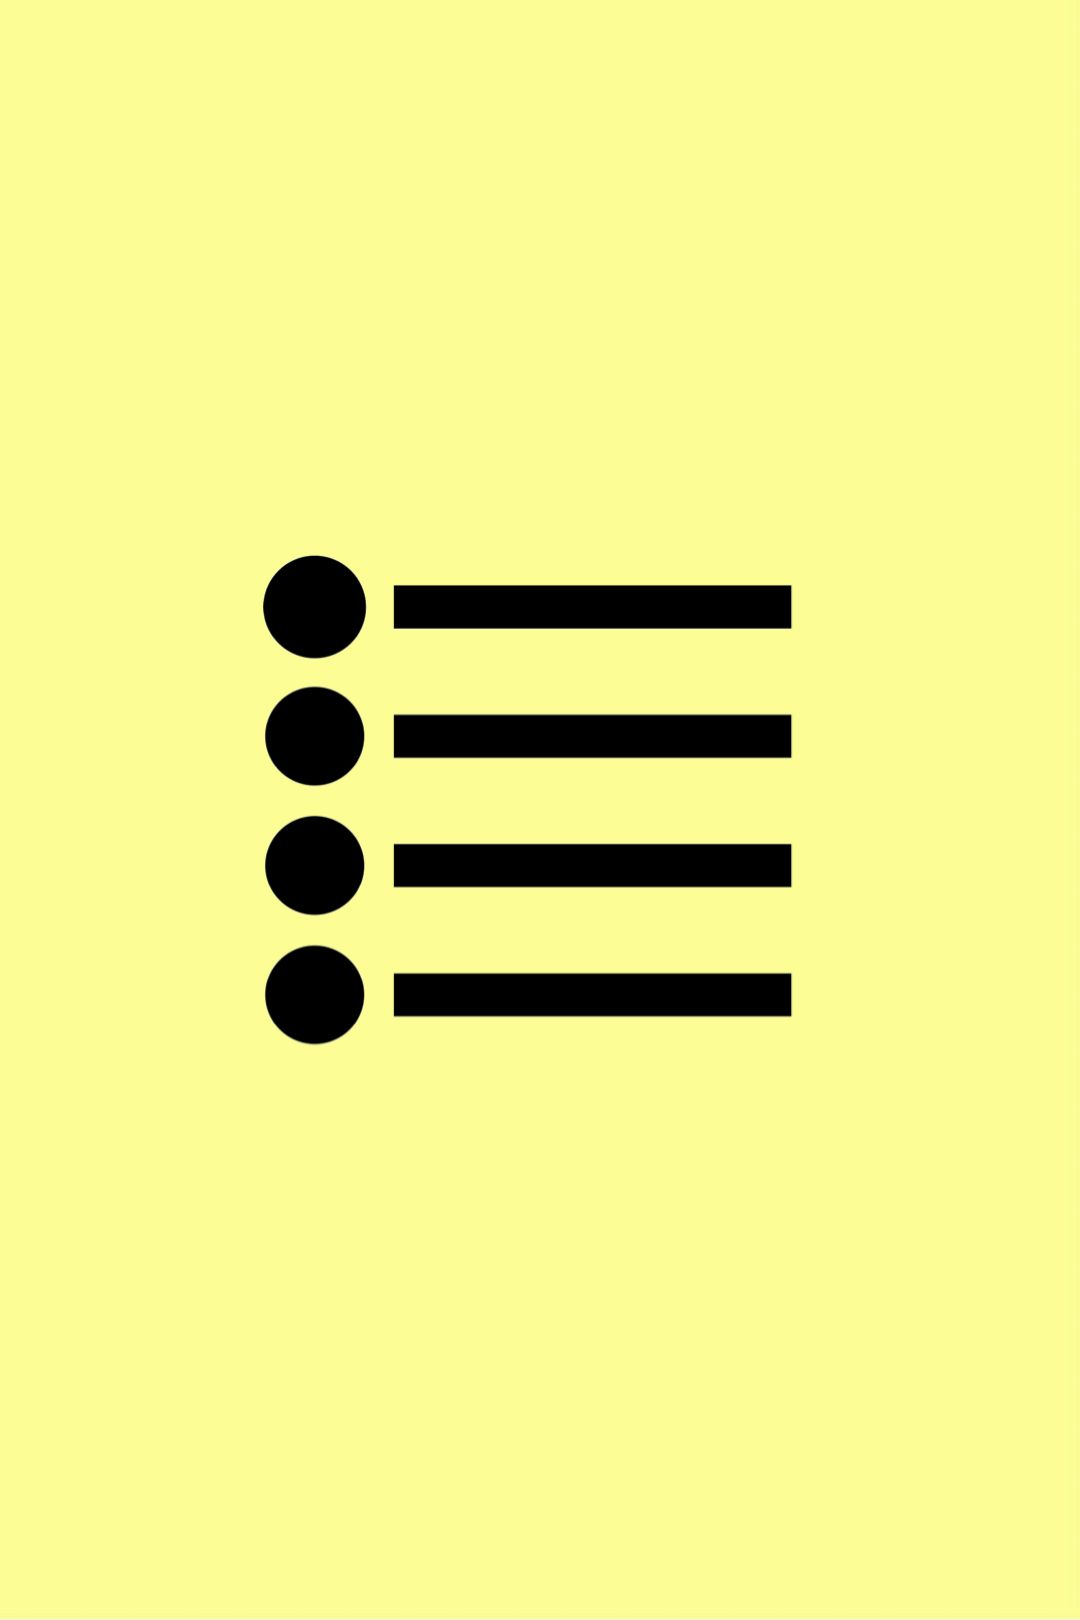 Pin By Icons On Pastel Yellow App Icon App Covers Yellow Theme Collection of infographics logos and pictograms. pin by icons on pastel yellow app